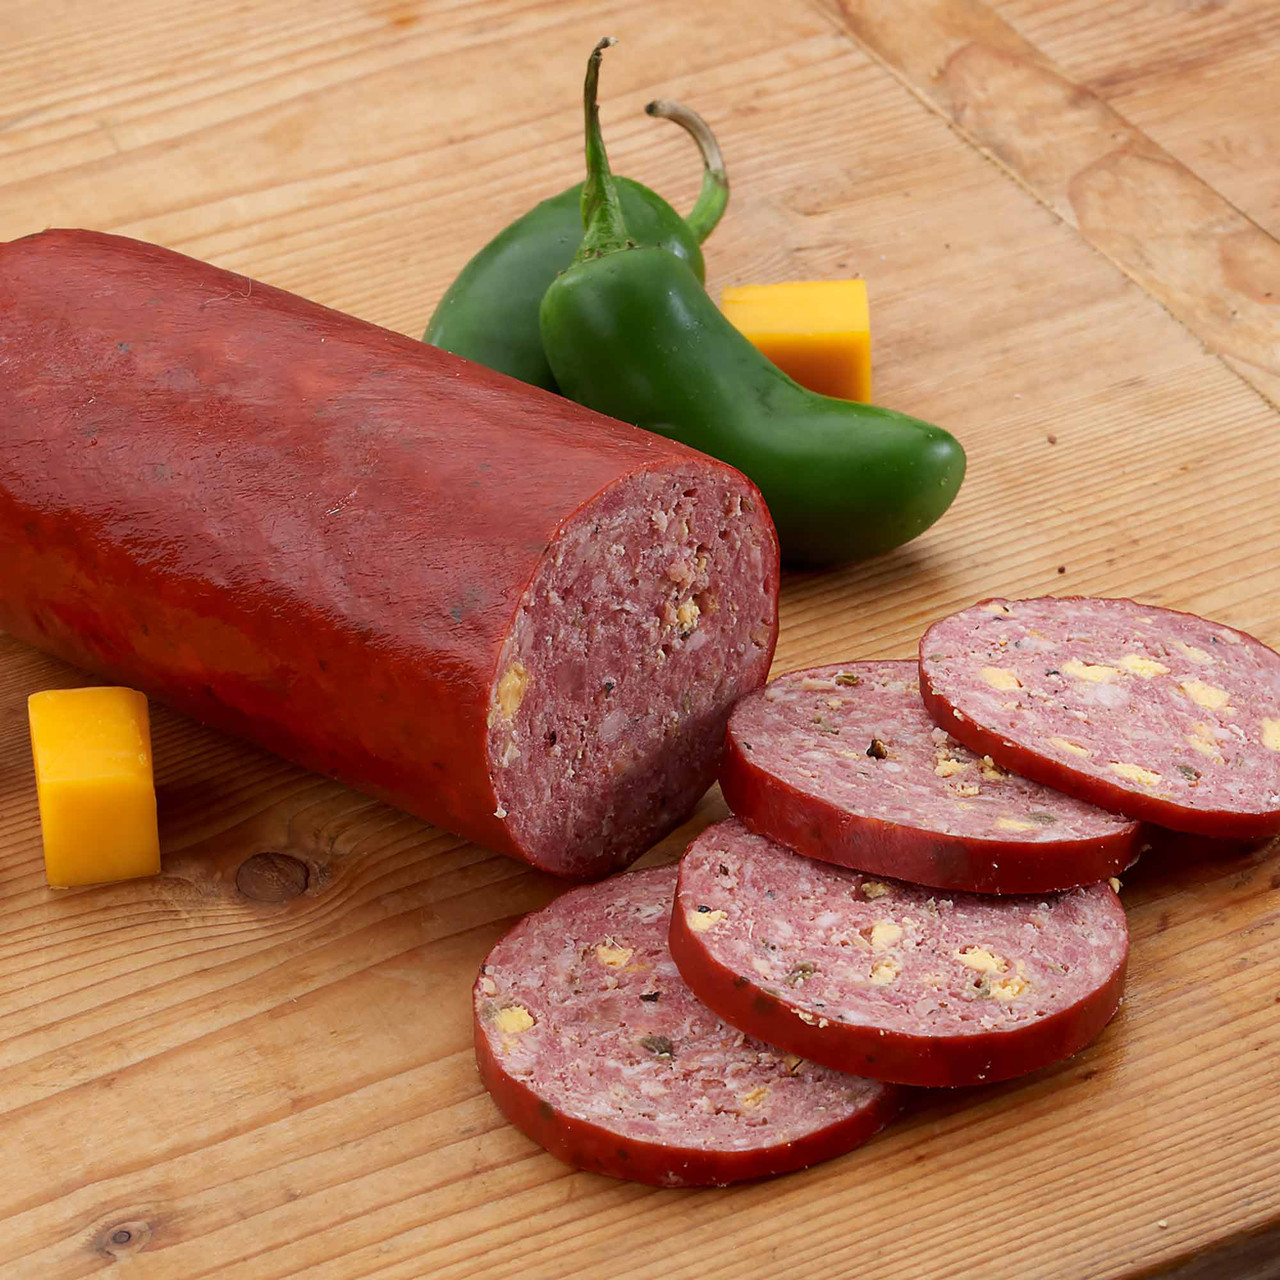 #189 - Jalapeño Summer Sausage Seasoning - Old world  flavors of garlic, and other spices – including diced Jalapeño! - with a hint of heat. Add cheese for a perfect combo! - A.C. LEGG OLD PLANTATION